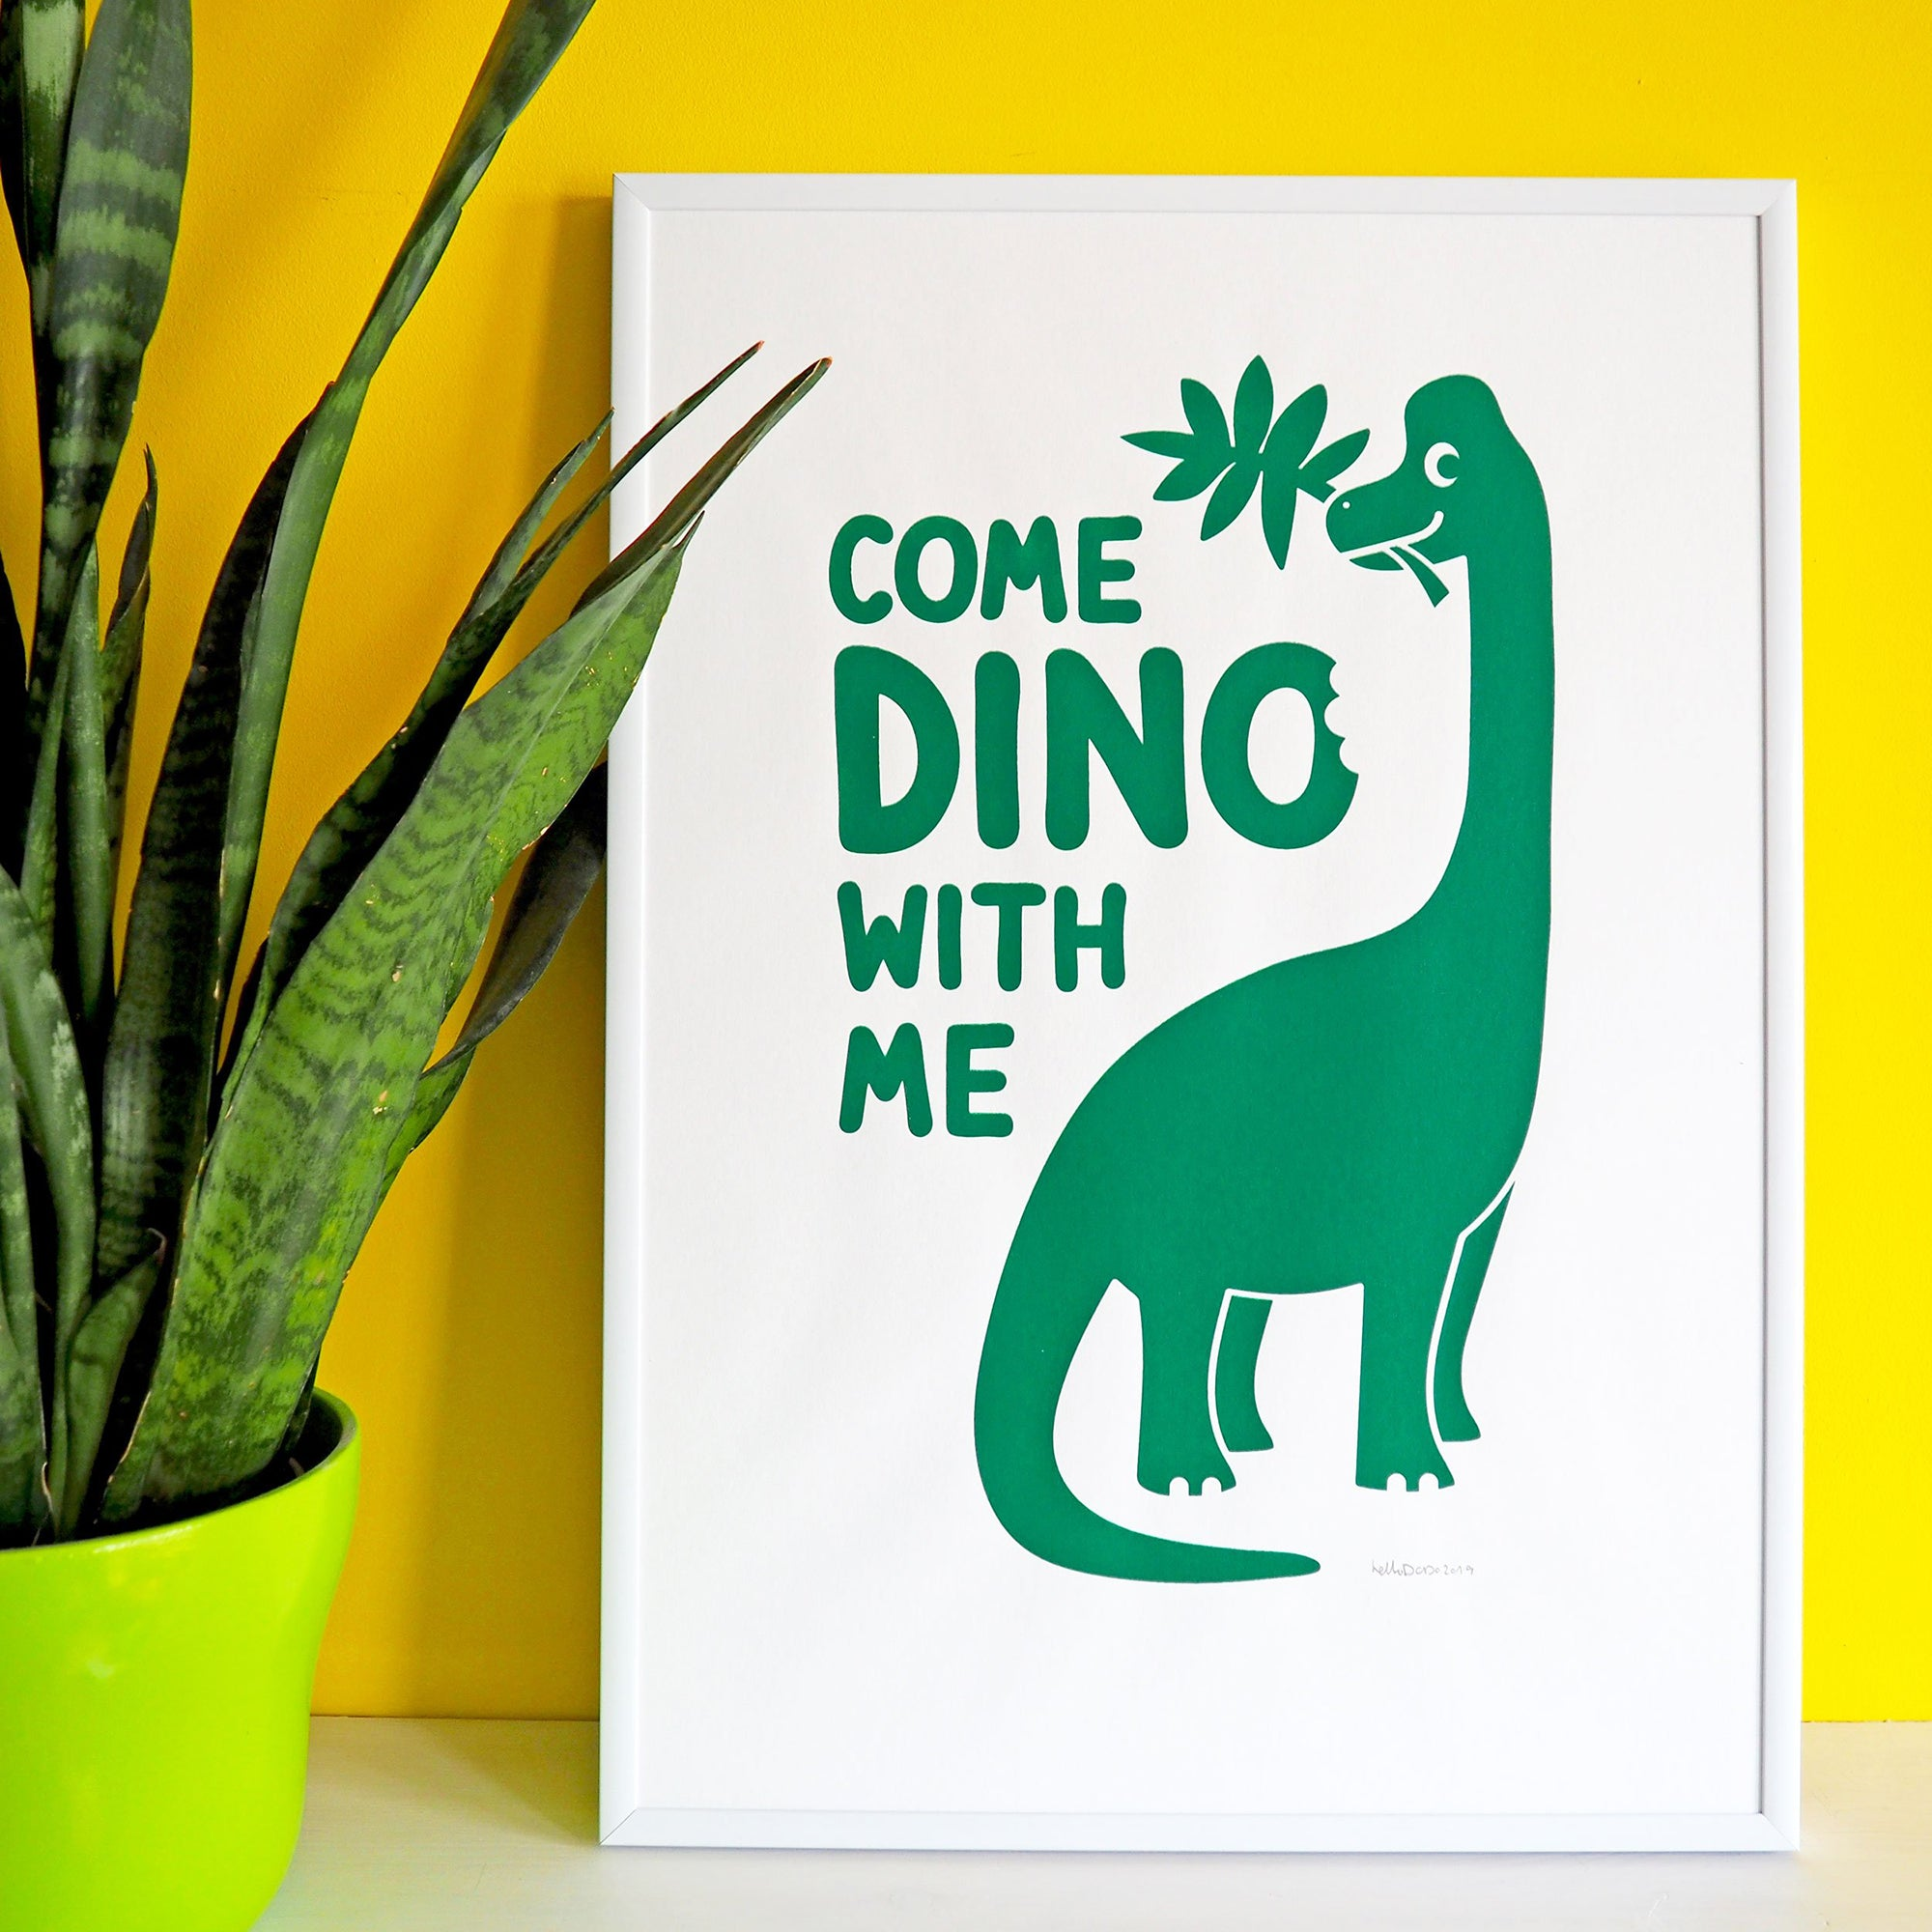 Come dino with me screen print - Inspired